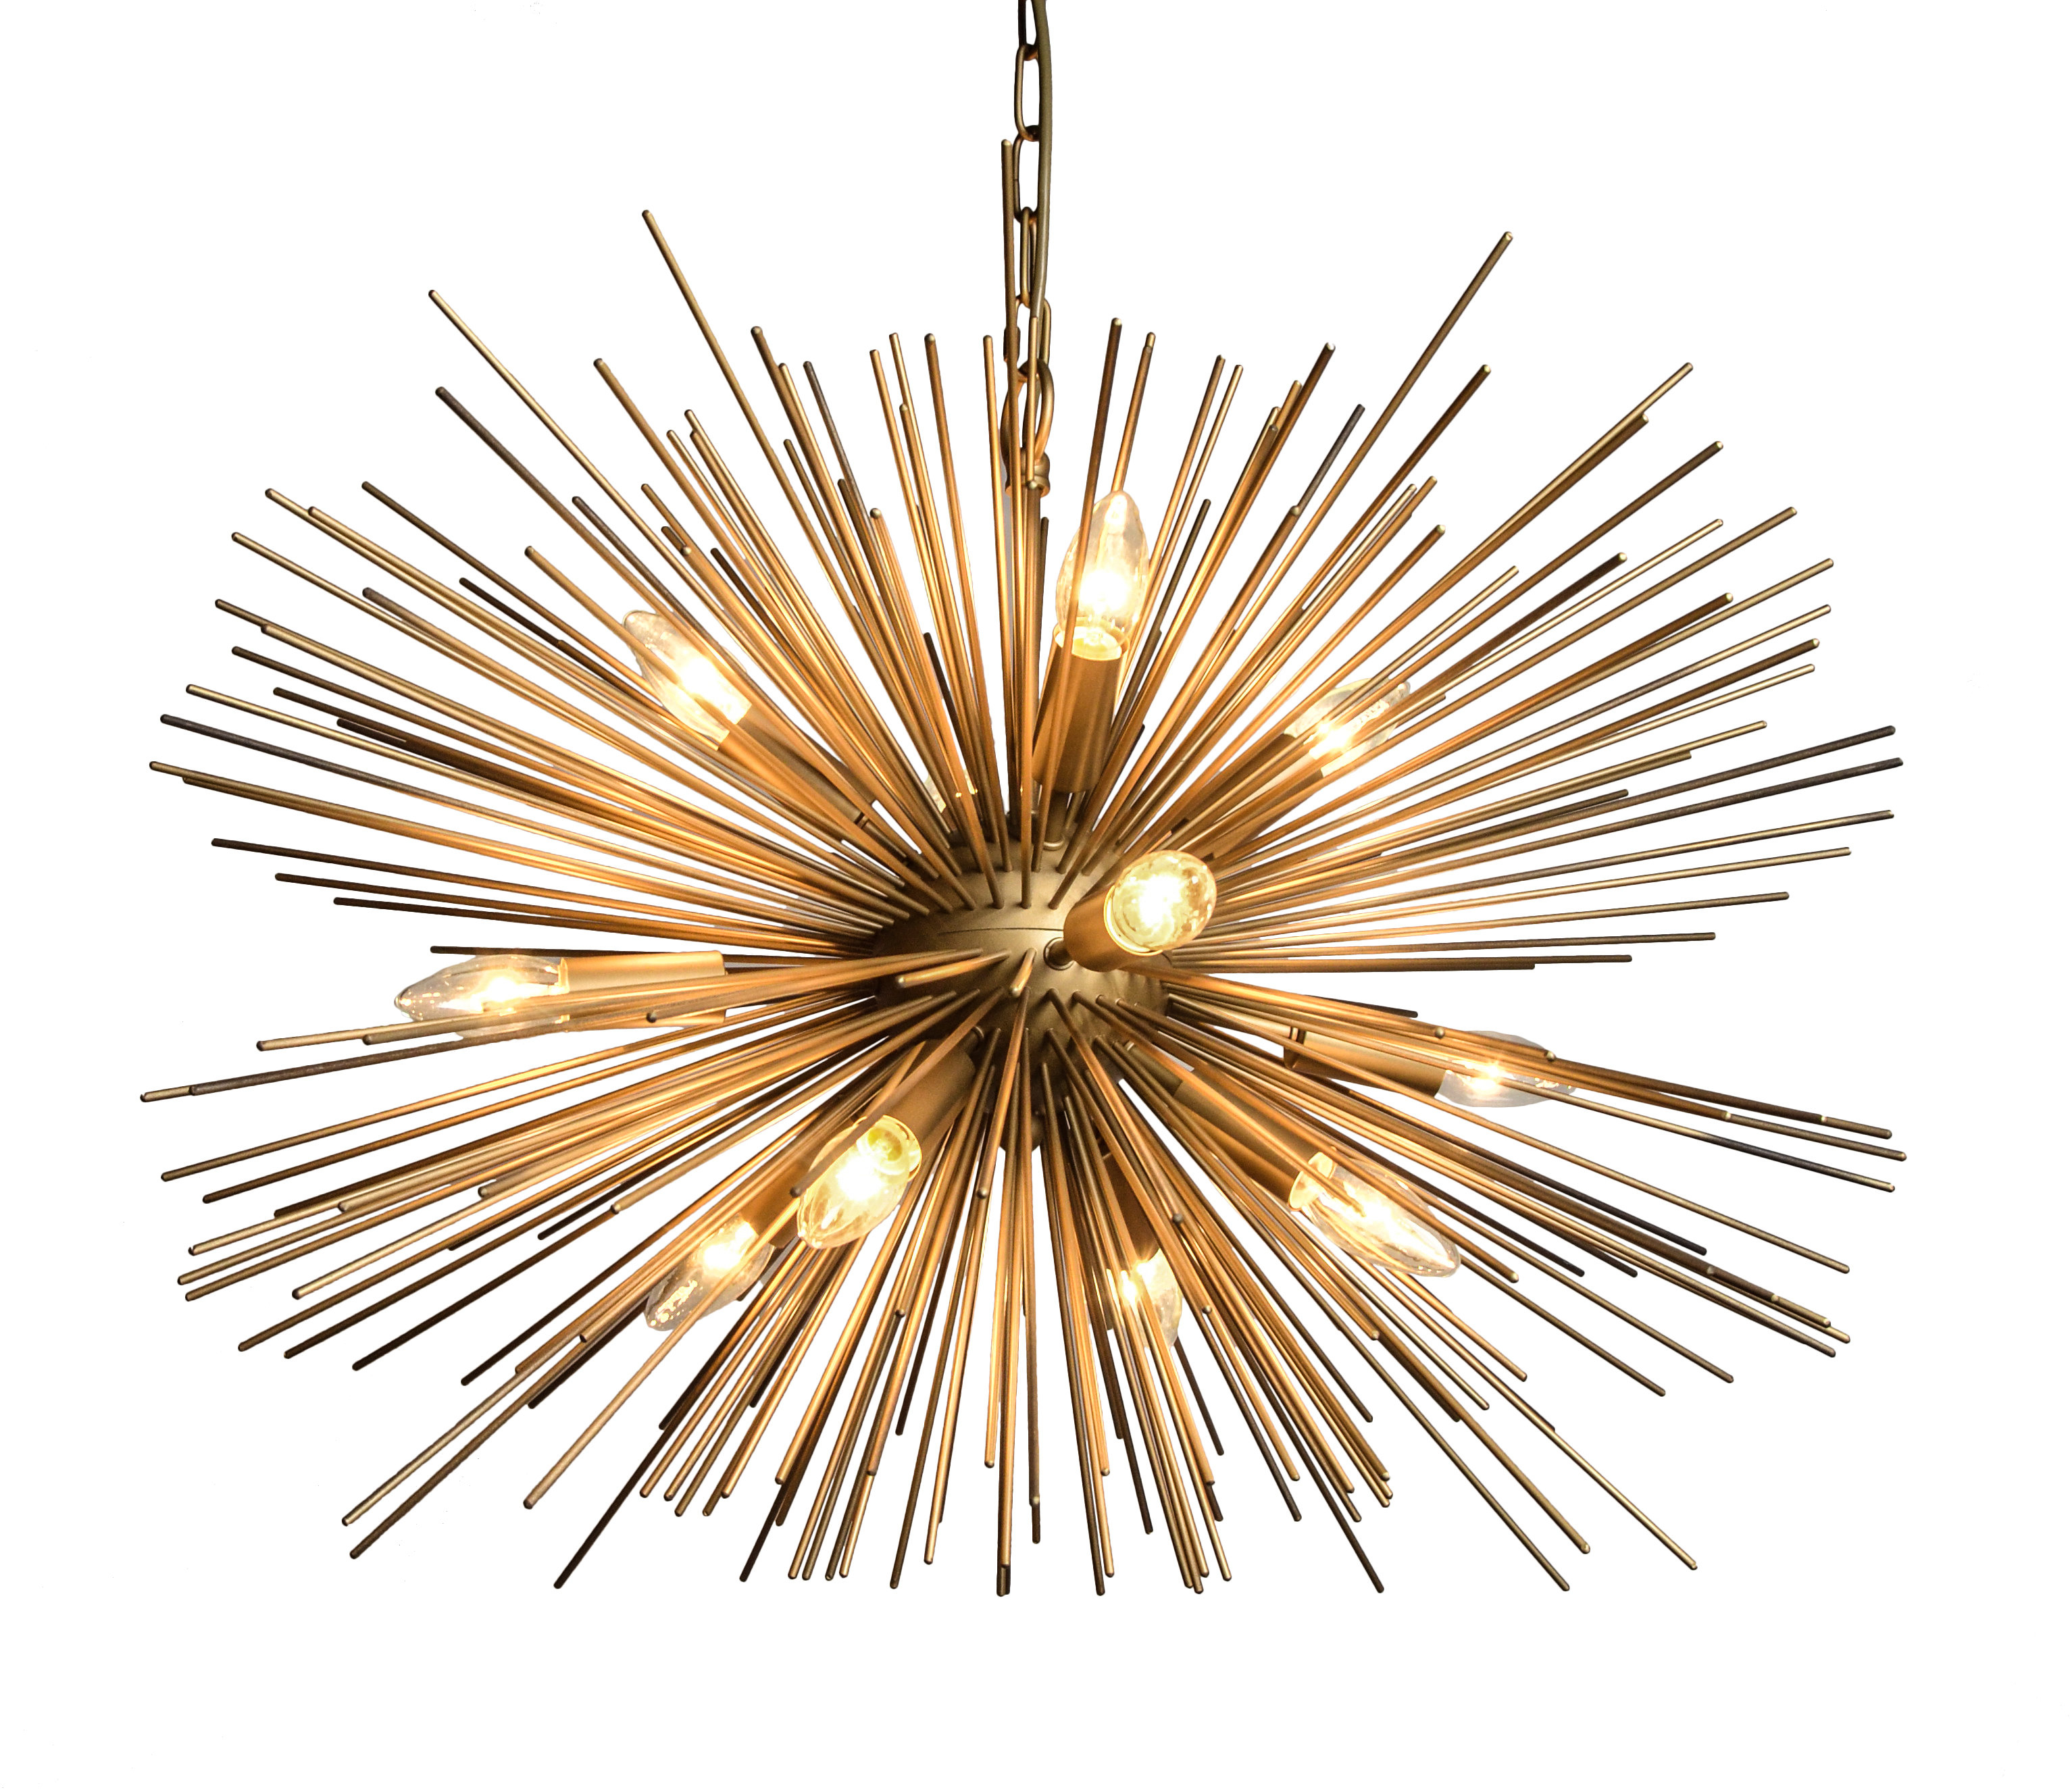 Nelly 12-Light Sputnik Chandeliers with Popular Nelly 12-Light Sputnik Chandelier